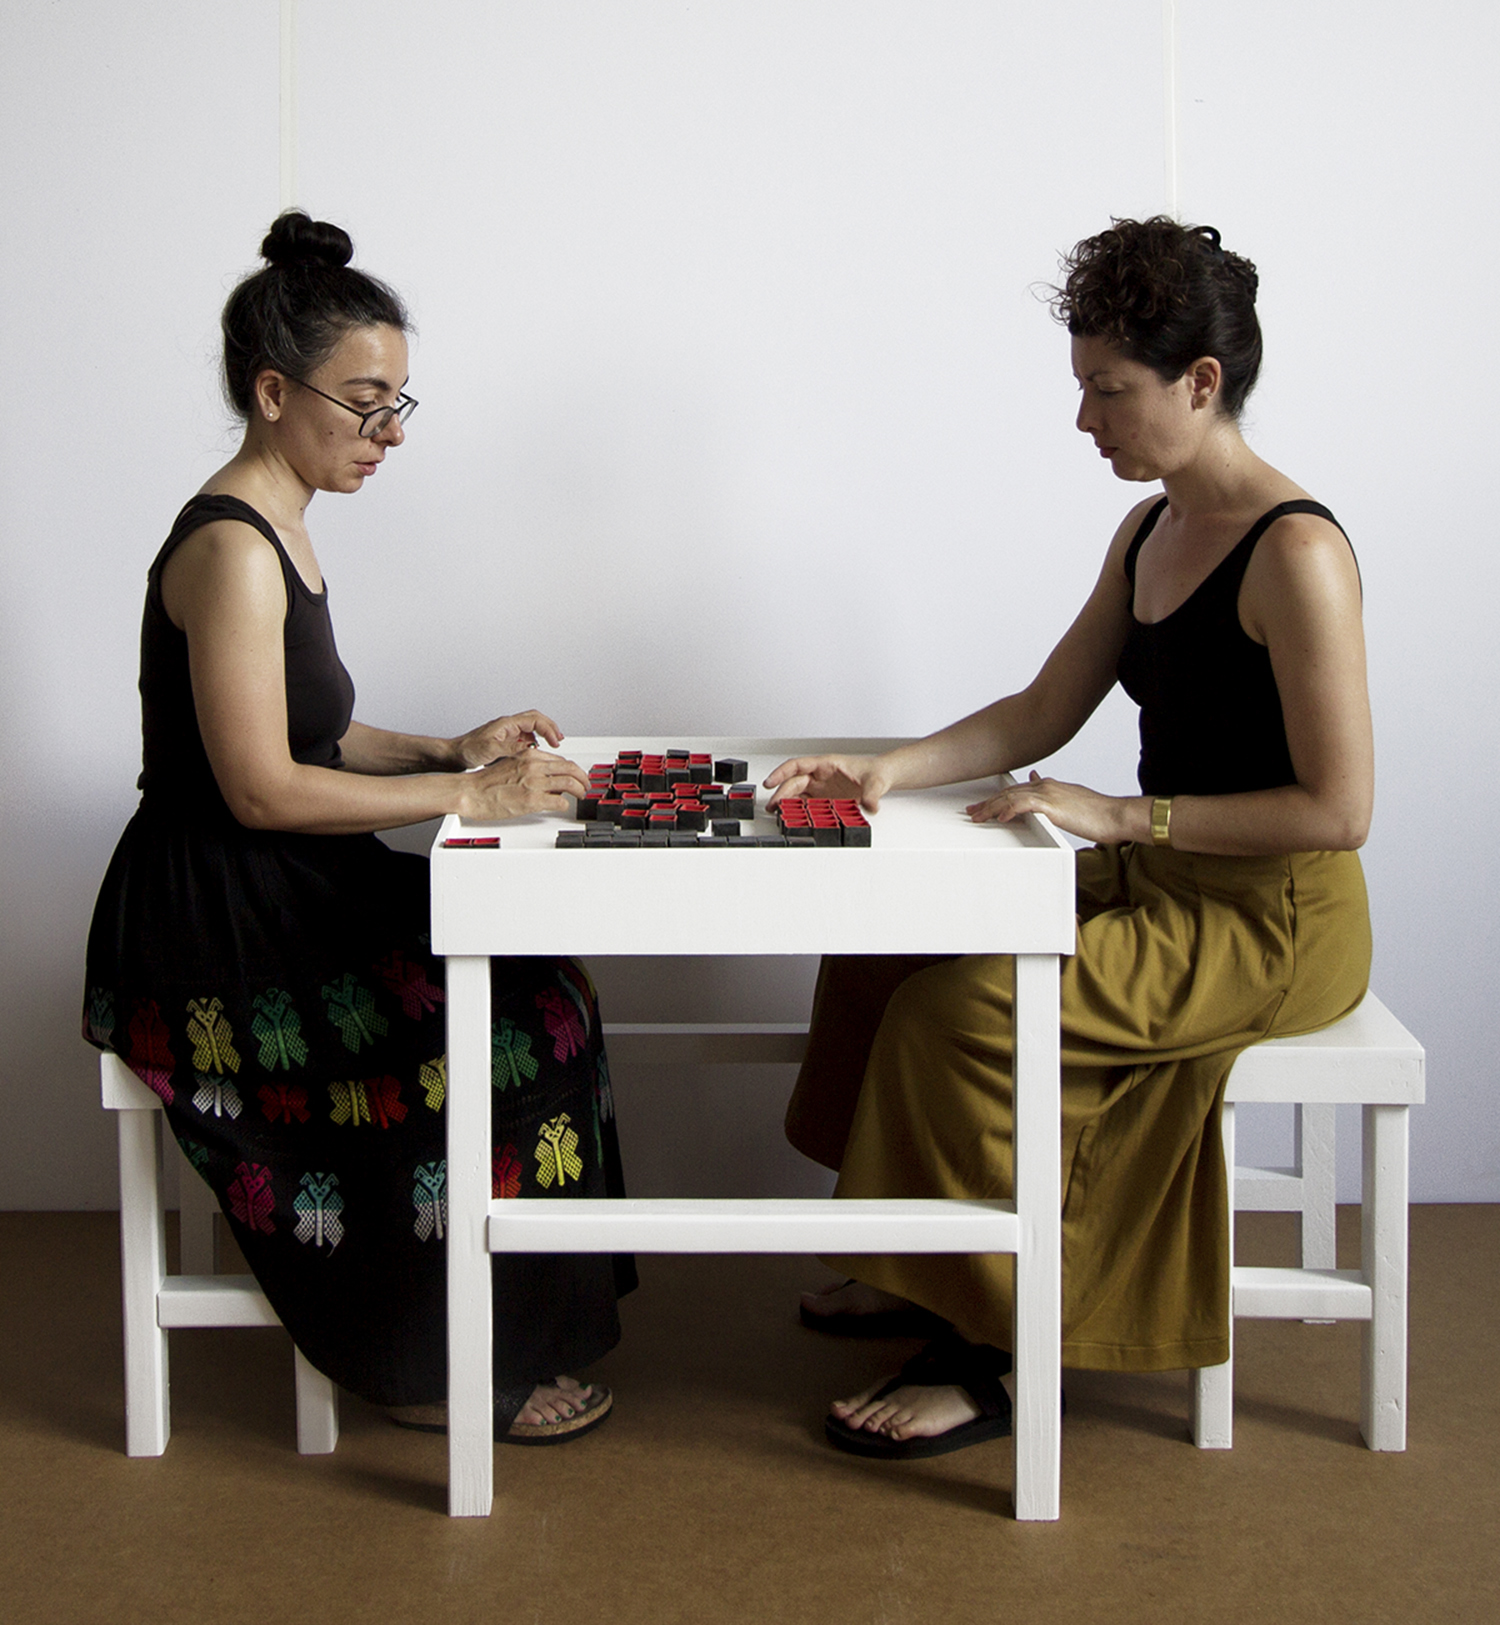 Invitation to Play : Open | Close | Open , interactive installation at the Bronx Museum of the Arts, July 22 - October 22, 2017  79 small ceramic vessels constitute game pieces in a moveable grid, representing organs in the human body. The title is lifted from a poem by Israeli poet Yehuda Amichai that reflects on states of being open/closed/open during pre-birth/life/death, respectively. During Performance sessions I invite visitors to play with me. They make the first move and determine the length of the game. The game has no rules.    Excerpts from these interactions: